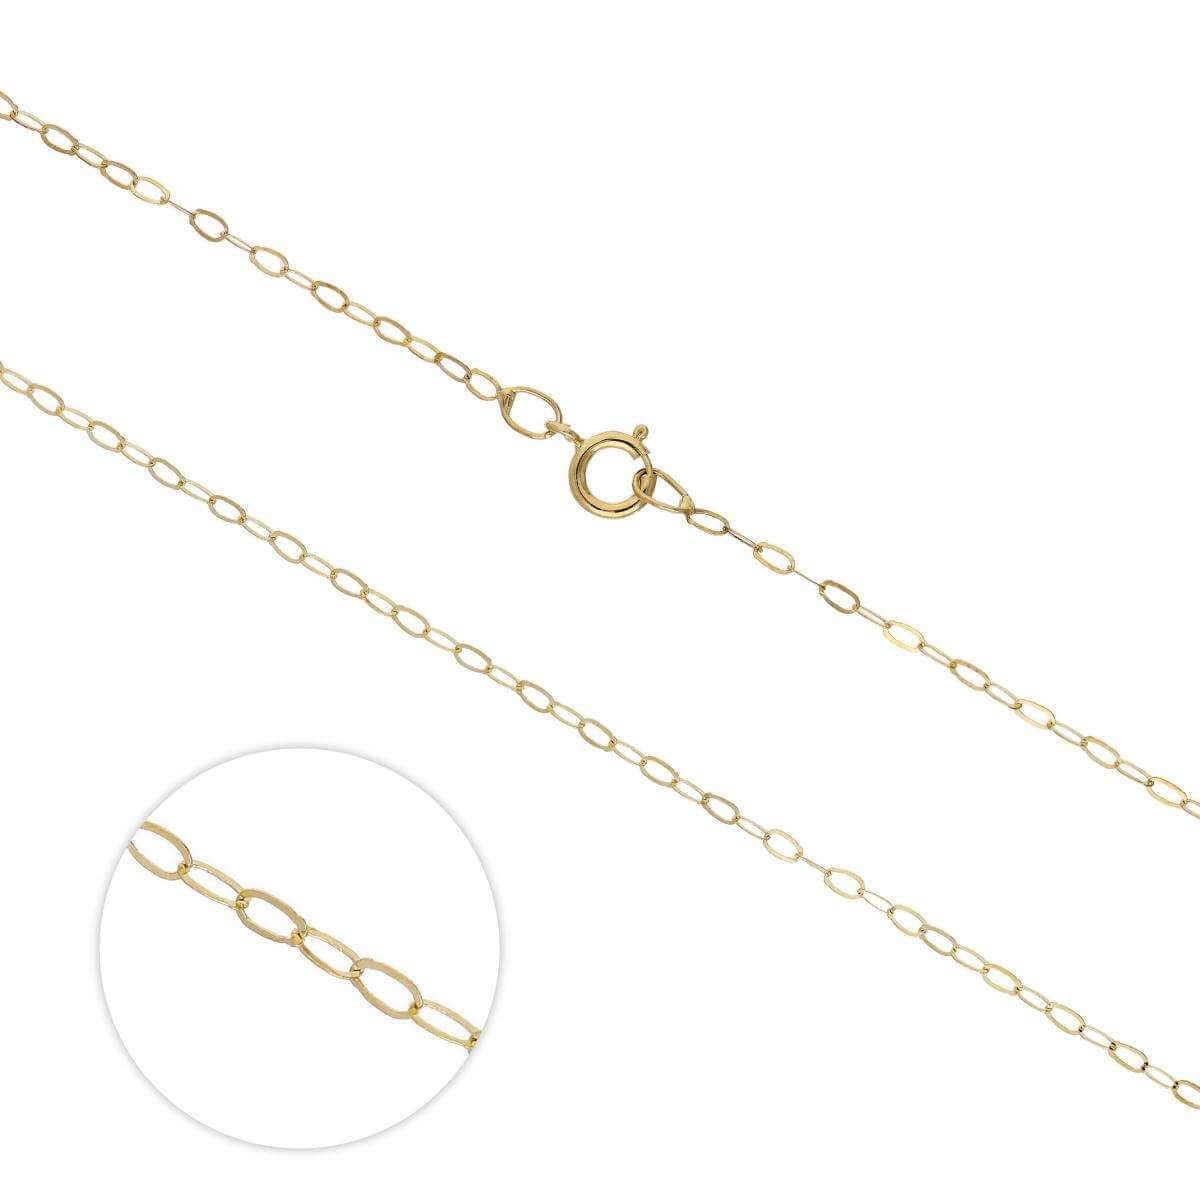 9ct Gold Lightweight Trace Chain 16 - 20 Inches